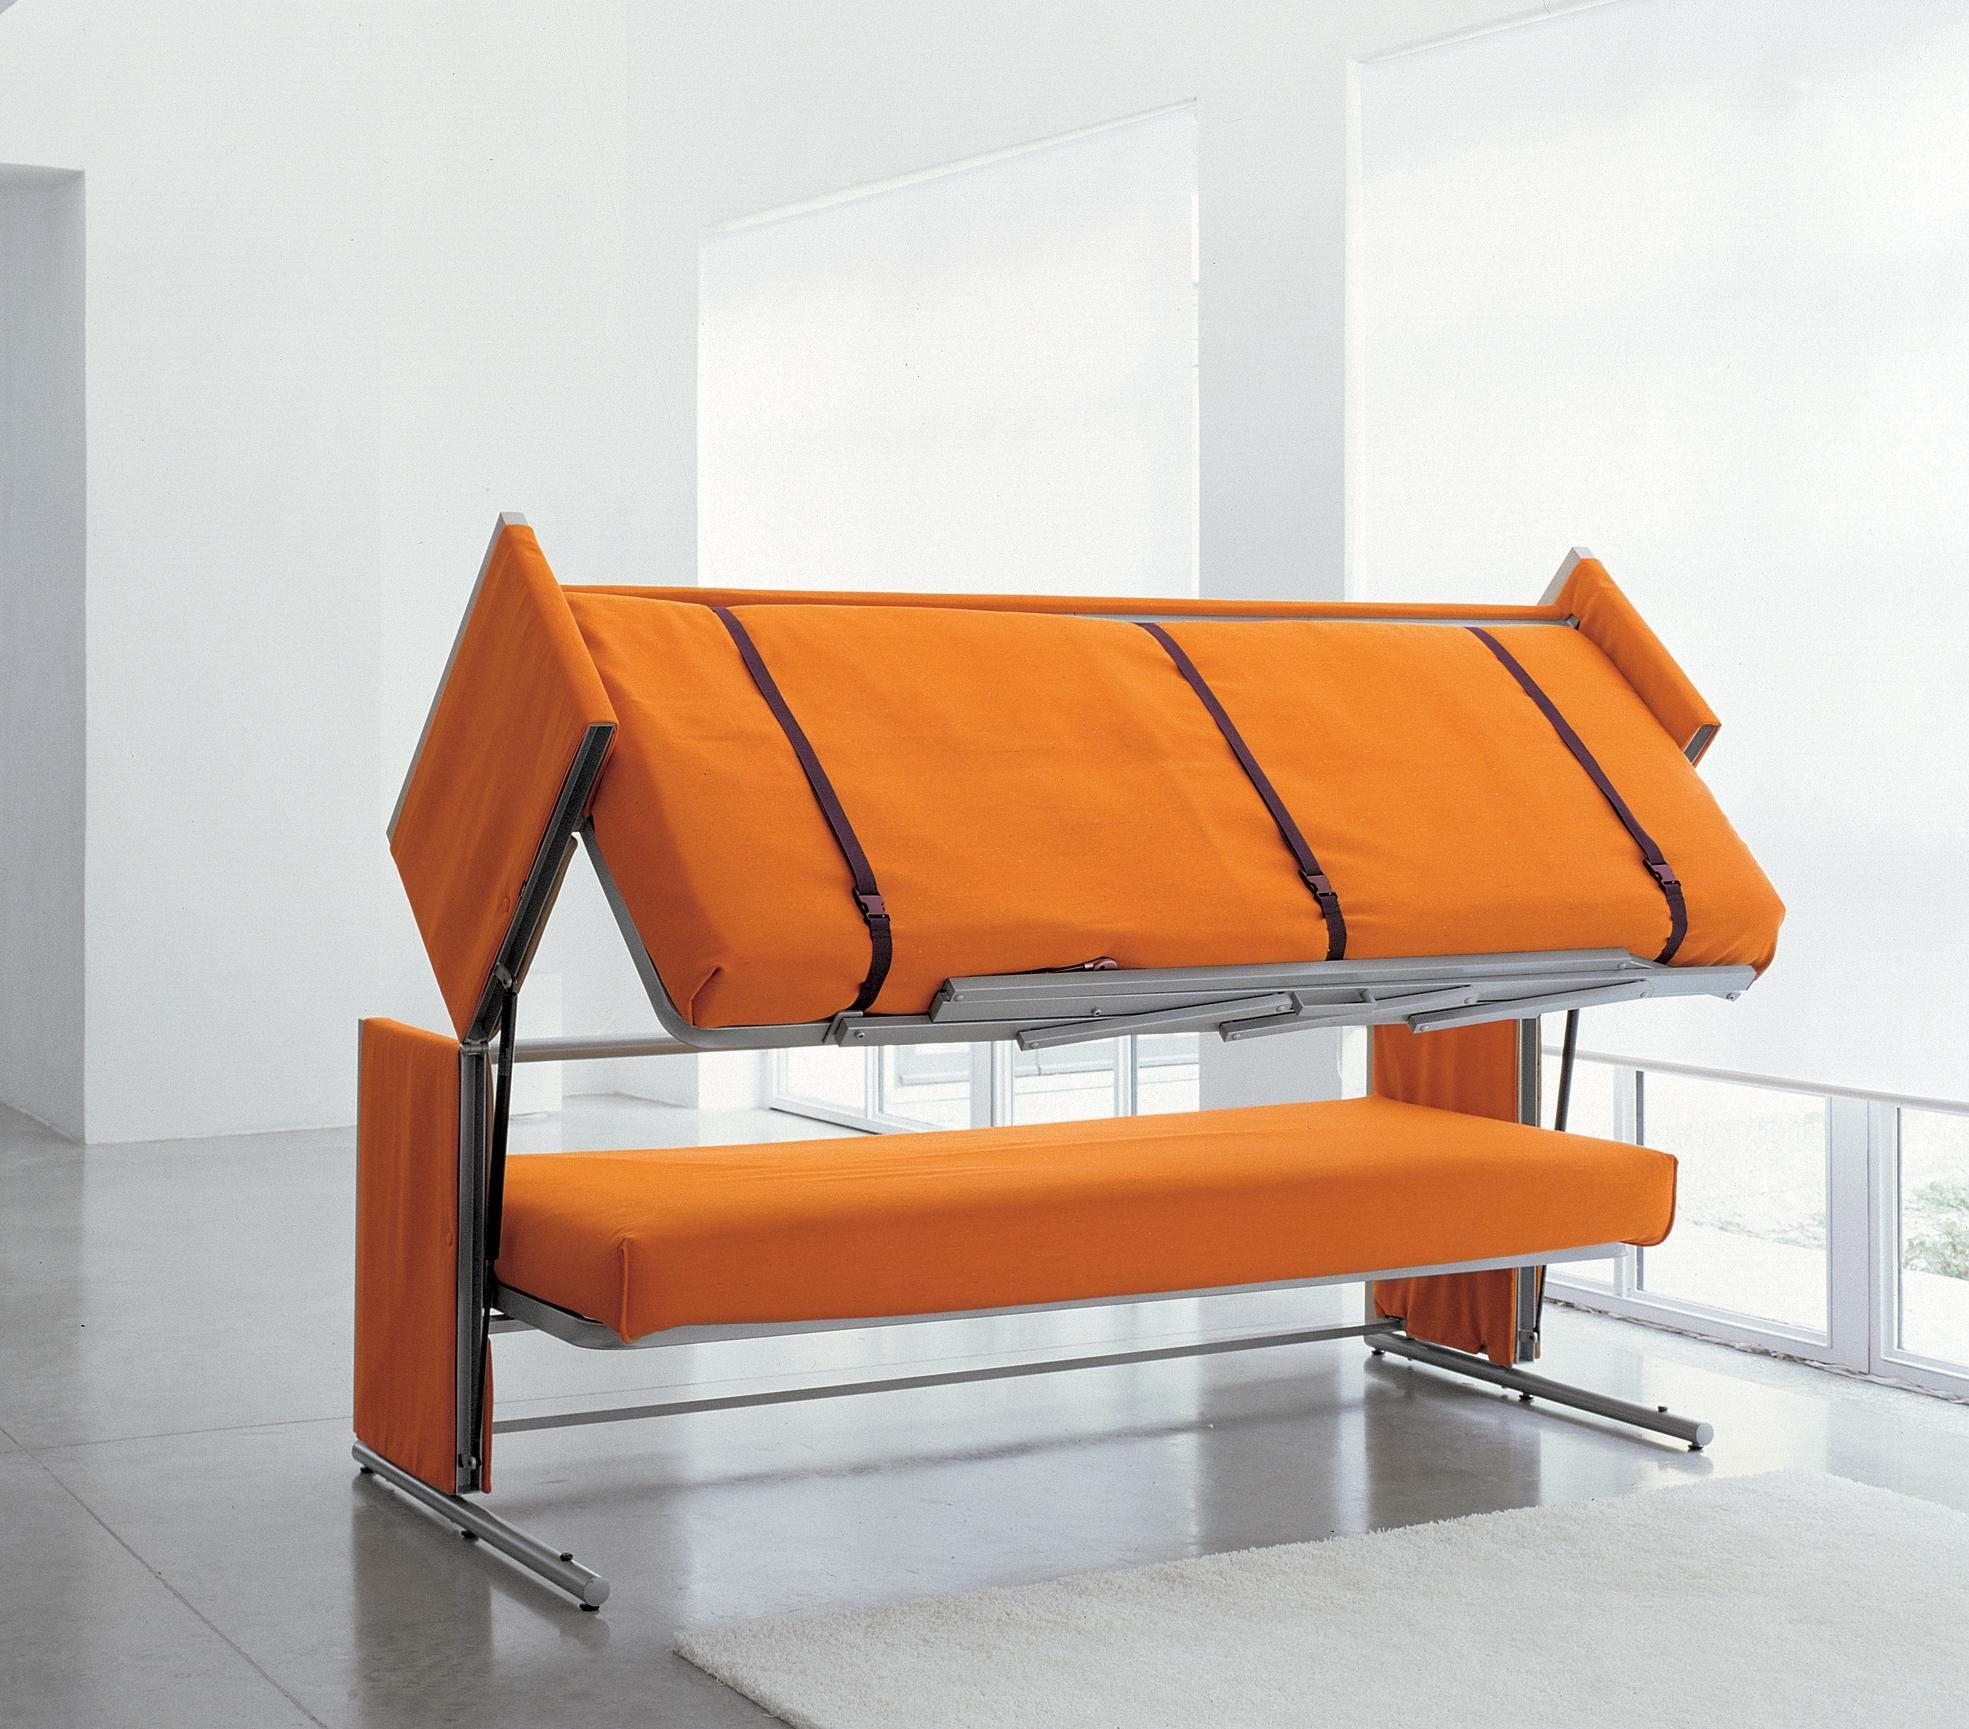 30 Creative Space Saving Furniture Designs For Small Homes Intended For Collapsible Sofas (View 2 of 20)